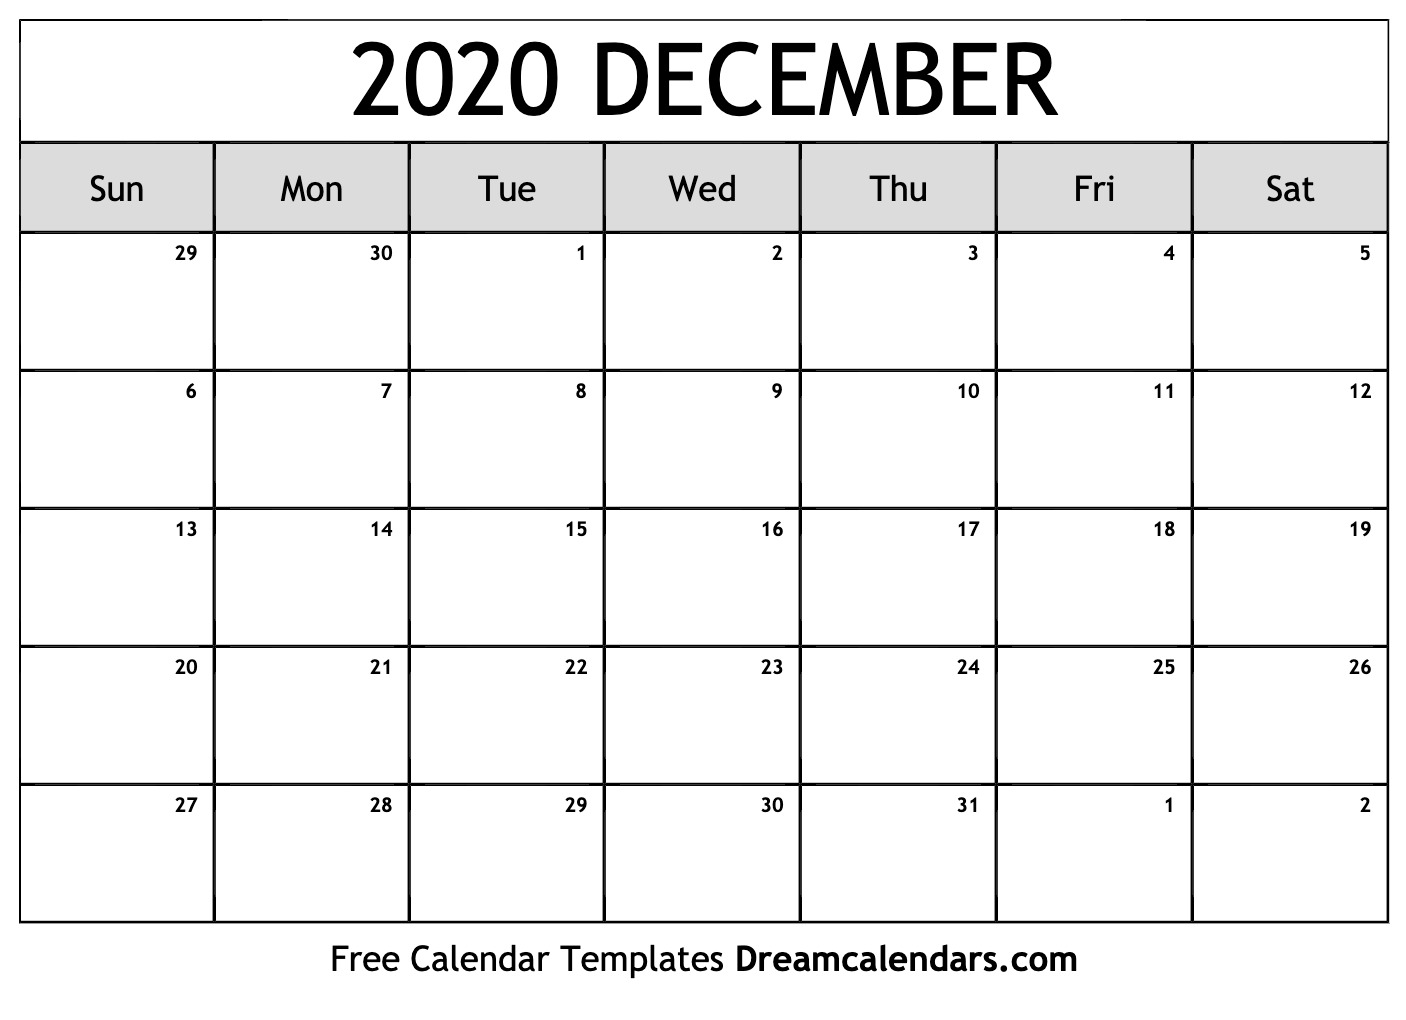 image about Printable December Calendar named Printable December 2020 Calendar